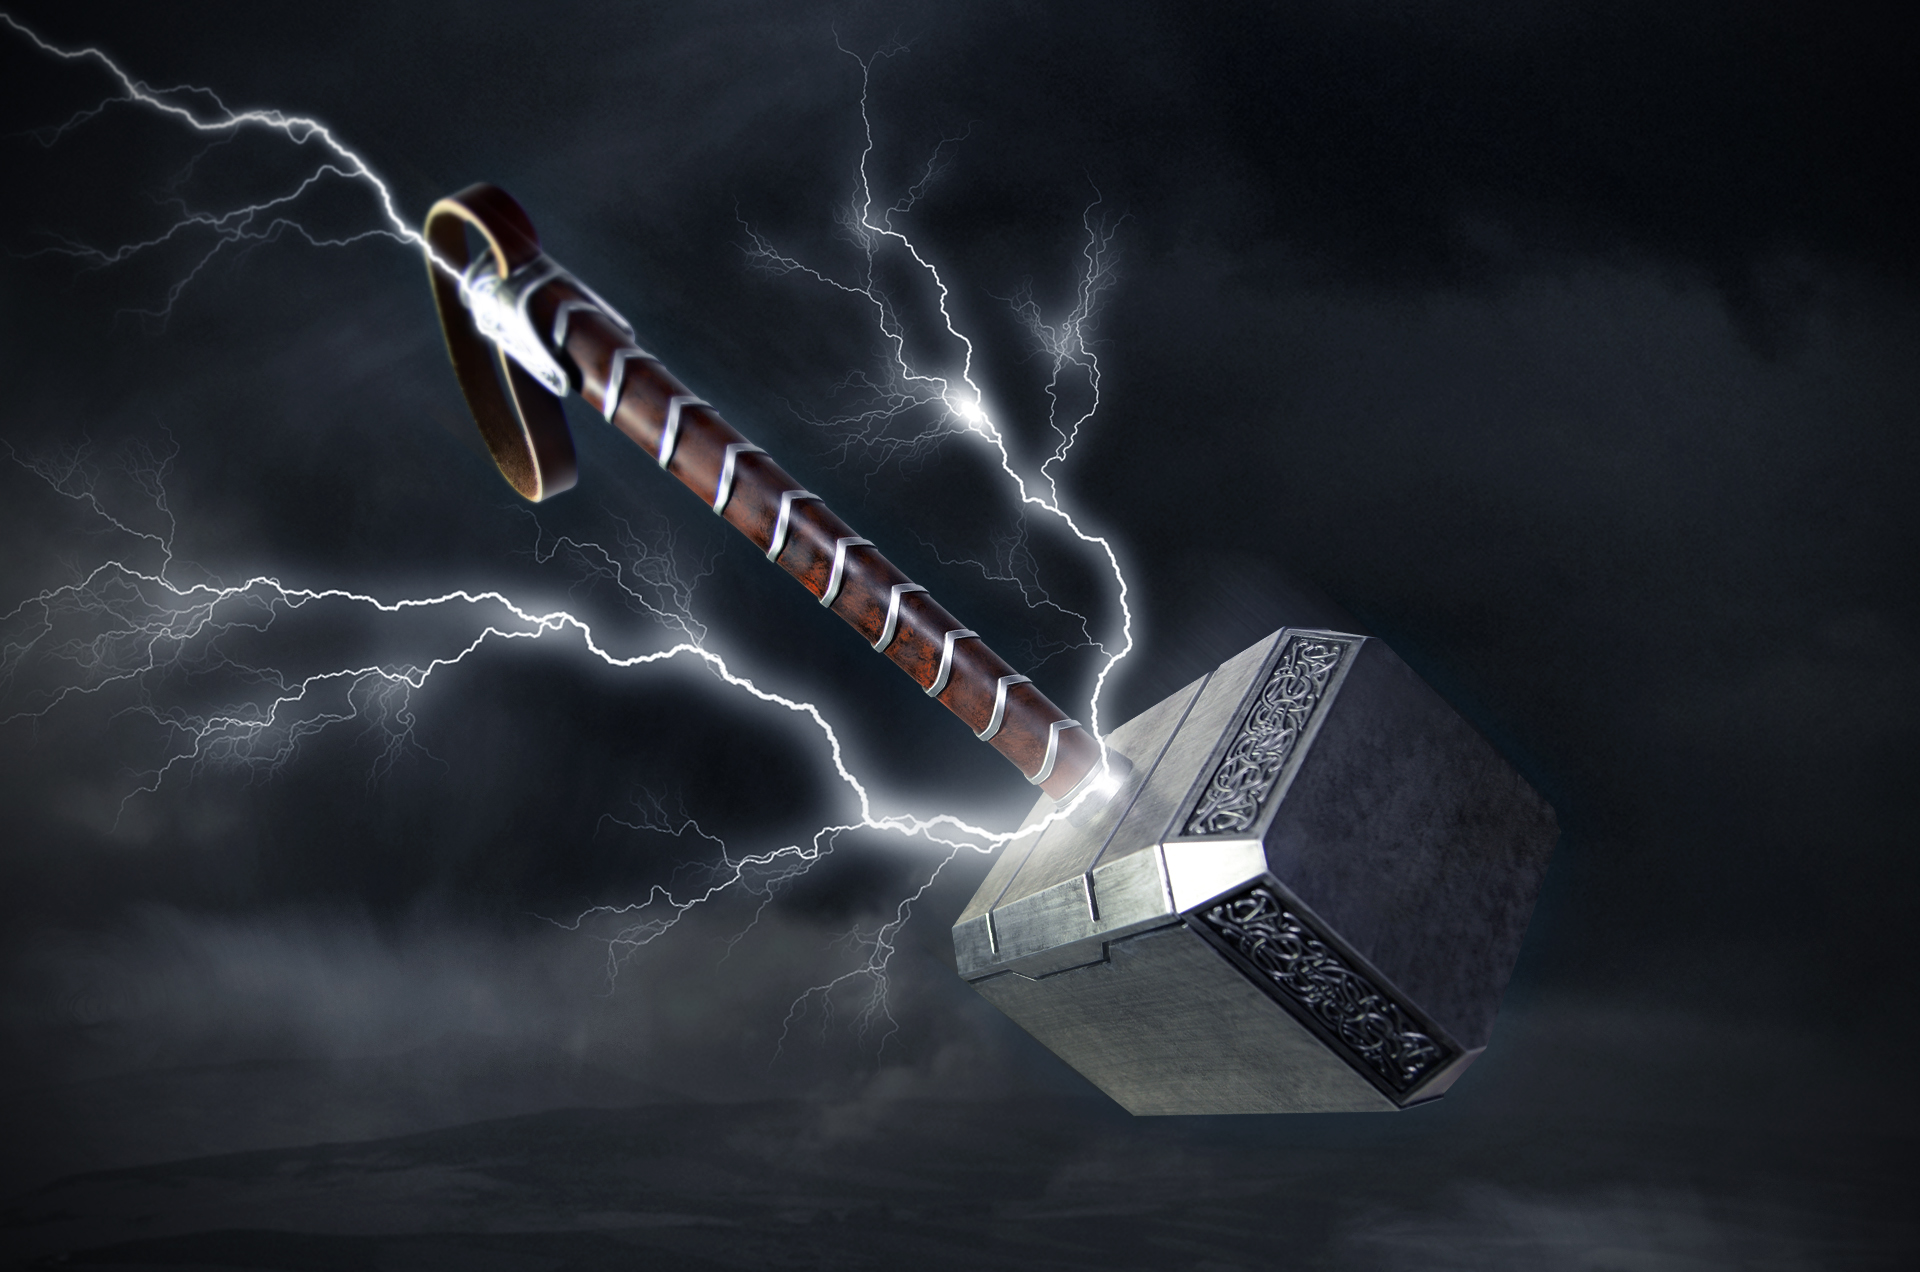 thor mjolnir live wallpaper free download